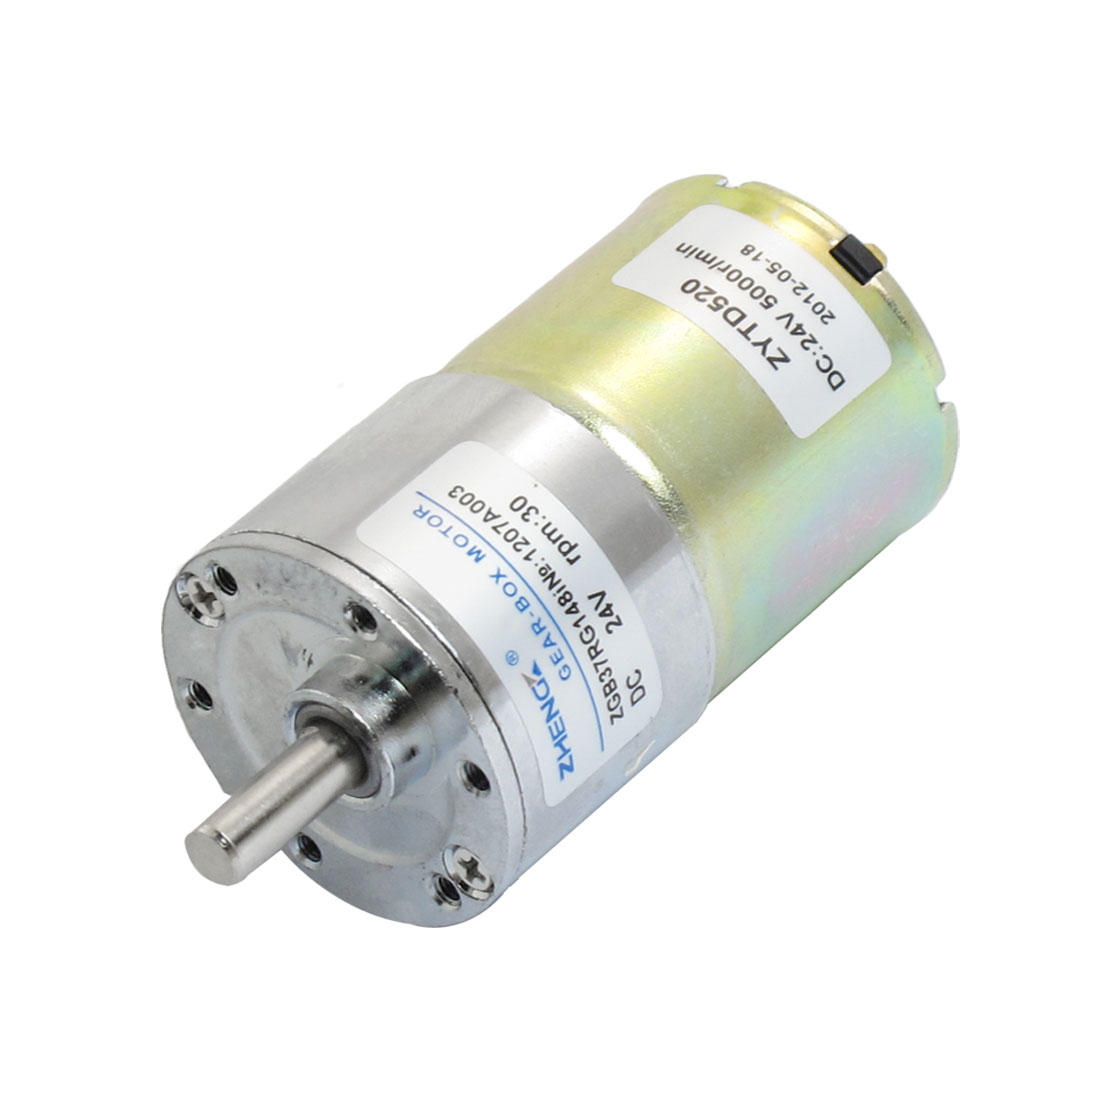 30RPM 24VDC 6mm Shaft Dia Speed Reduction Geared Motor